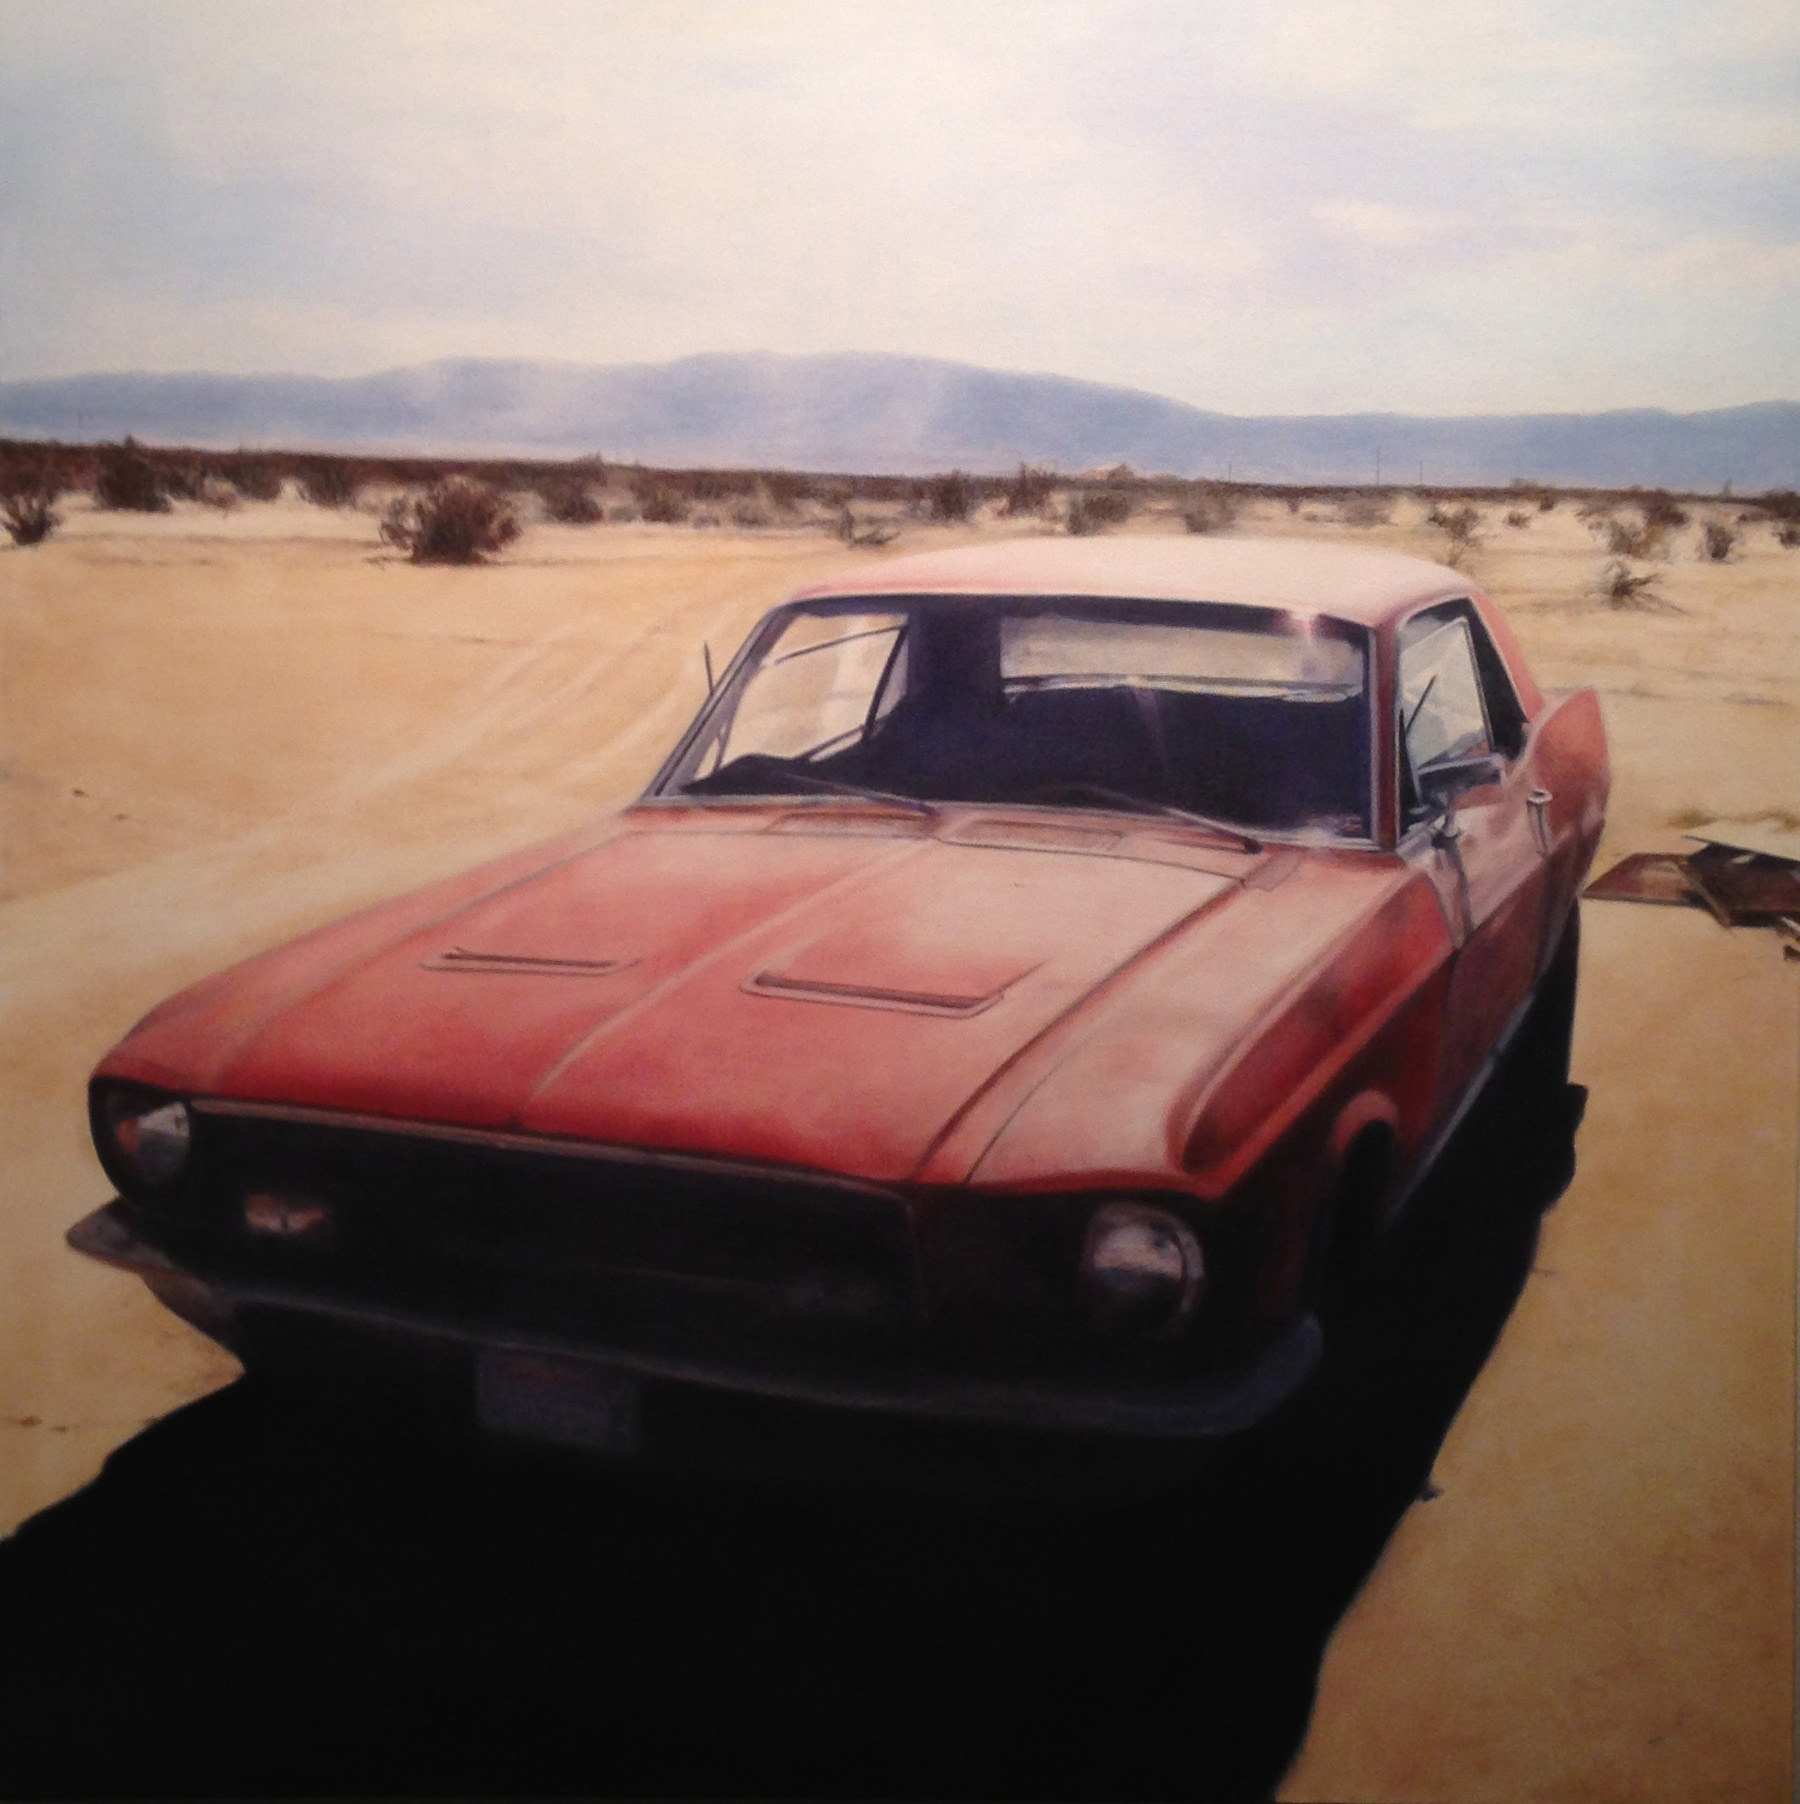 Deborah Martin, Mustang. This new painting from the Back of Beyond Series will be at the Palm Springs Fine Art Fair.